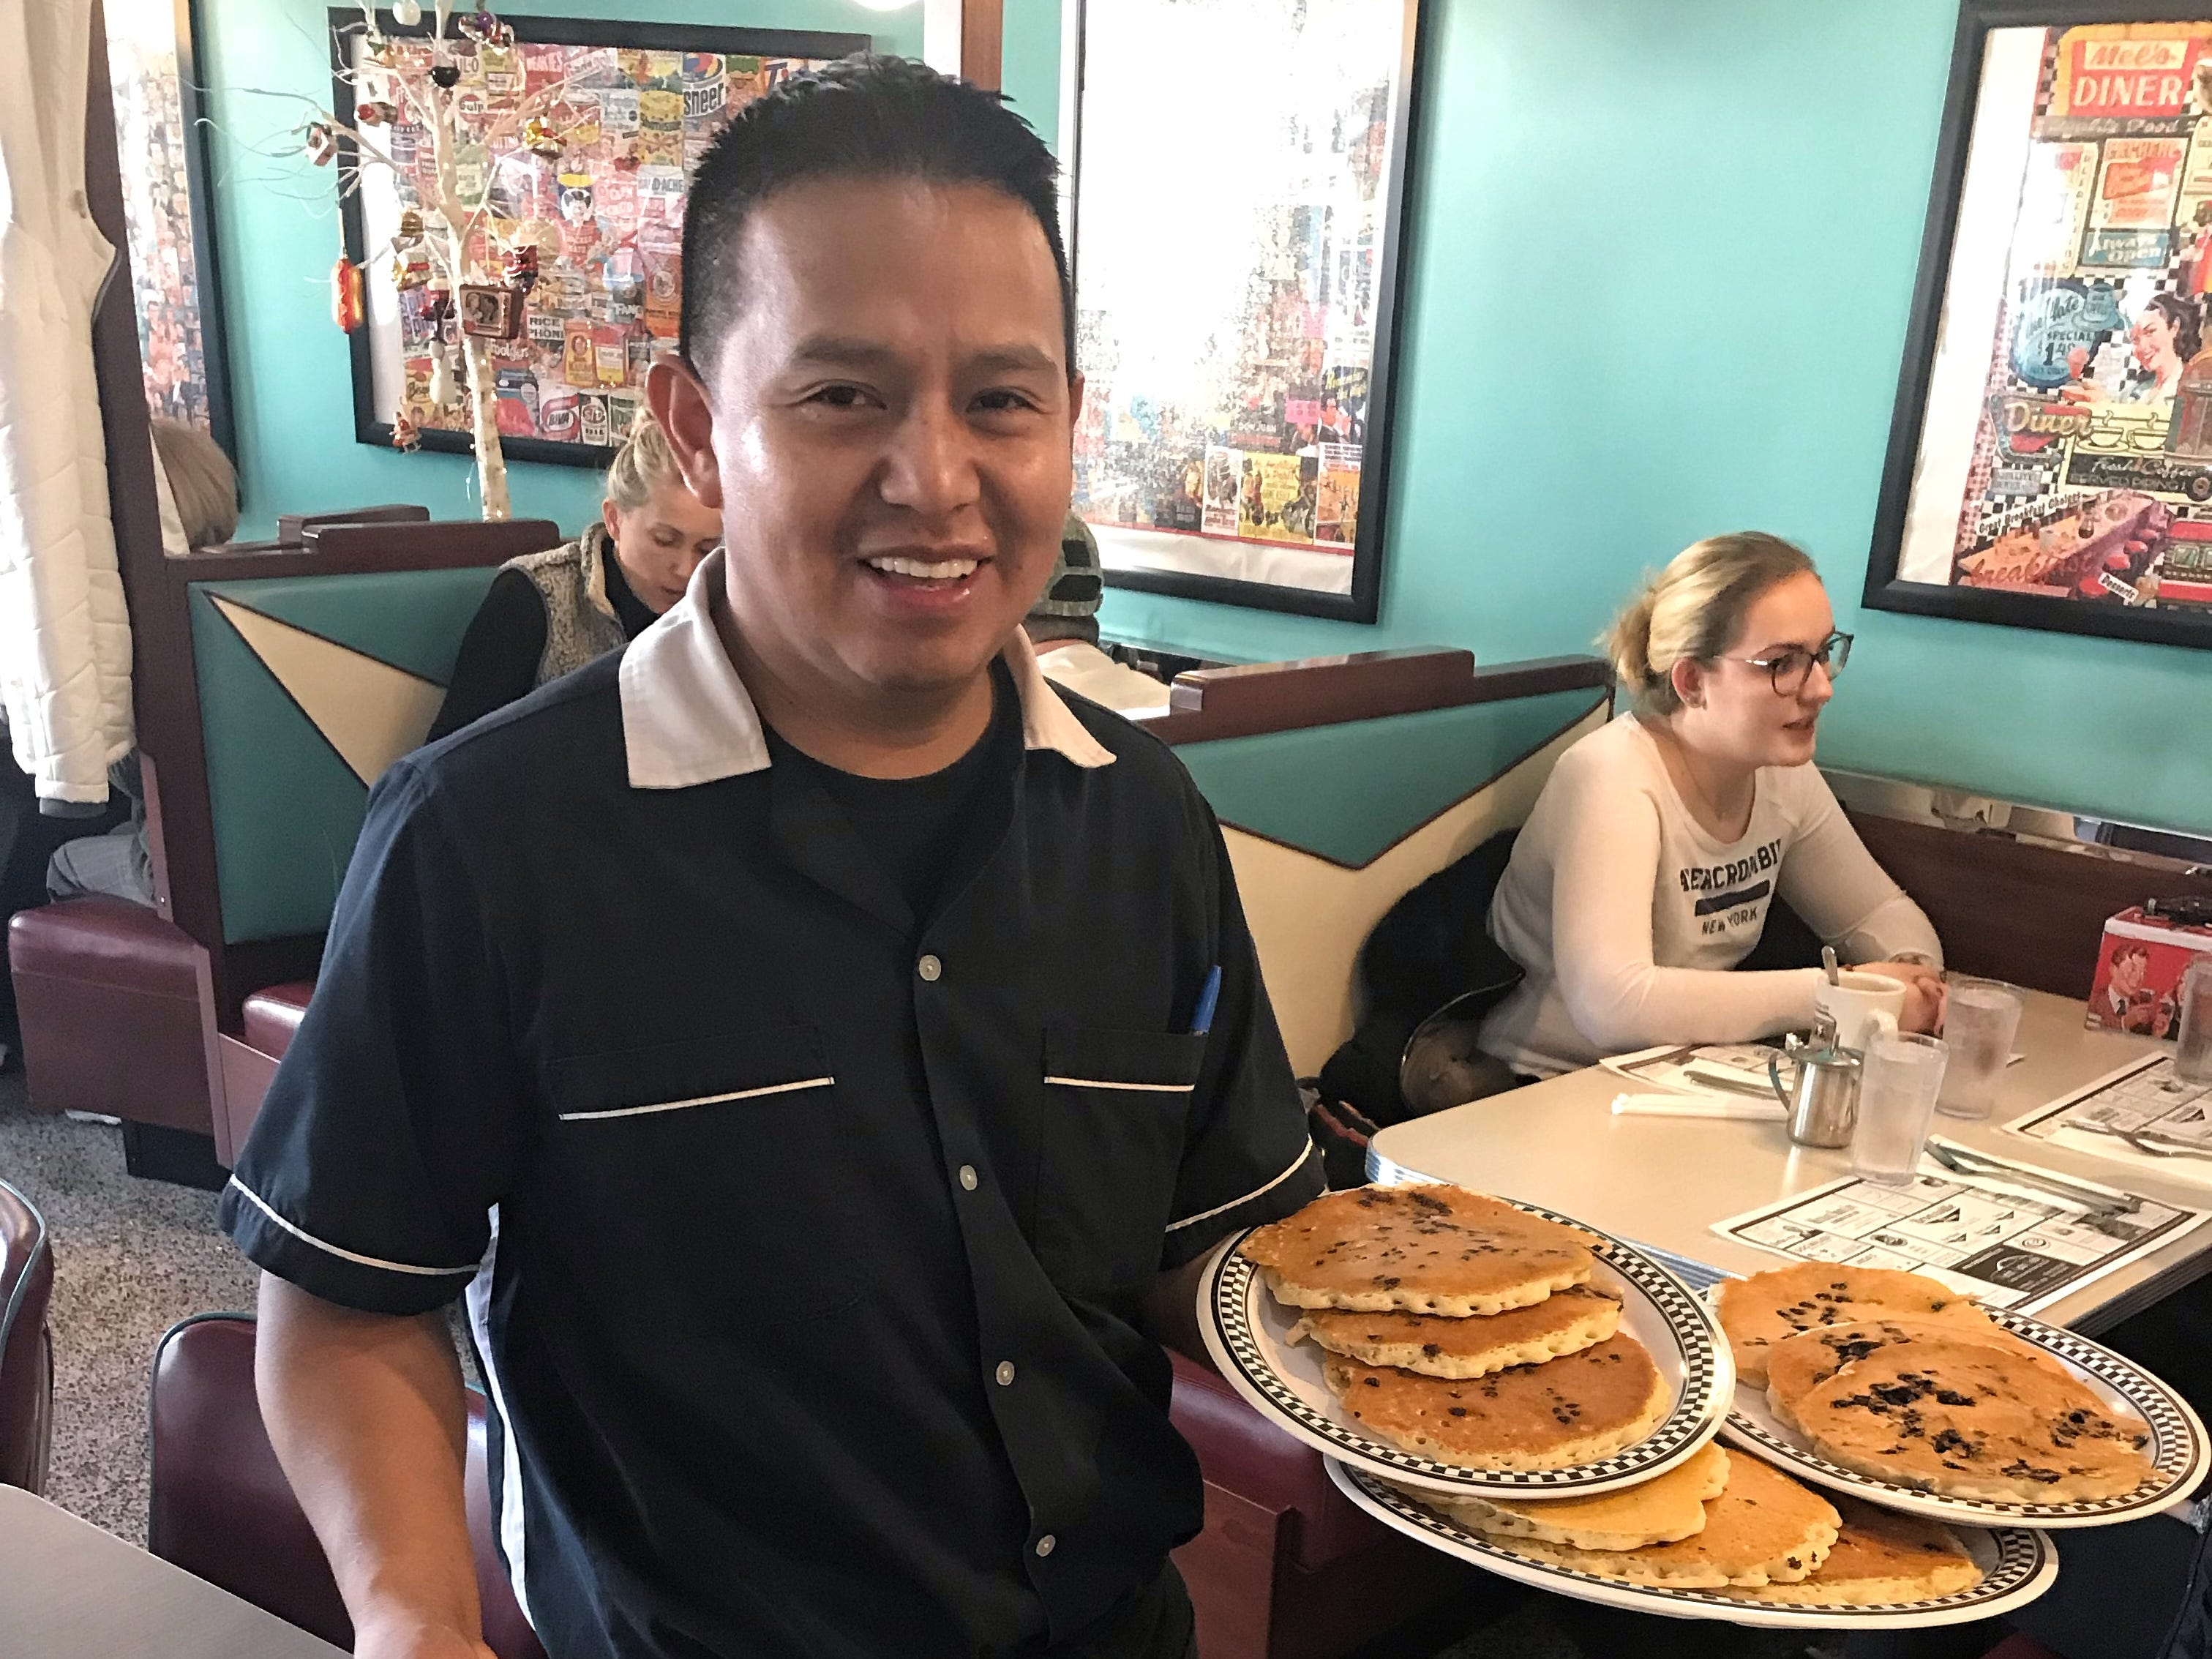 Otto Jimenez serves customers at Bronxville Diner in Bronxville. Photographed Dec. 12, 2018.